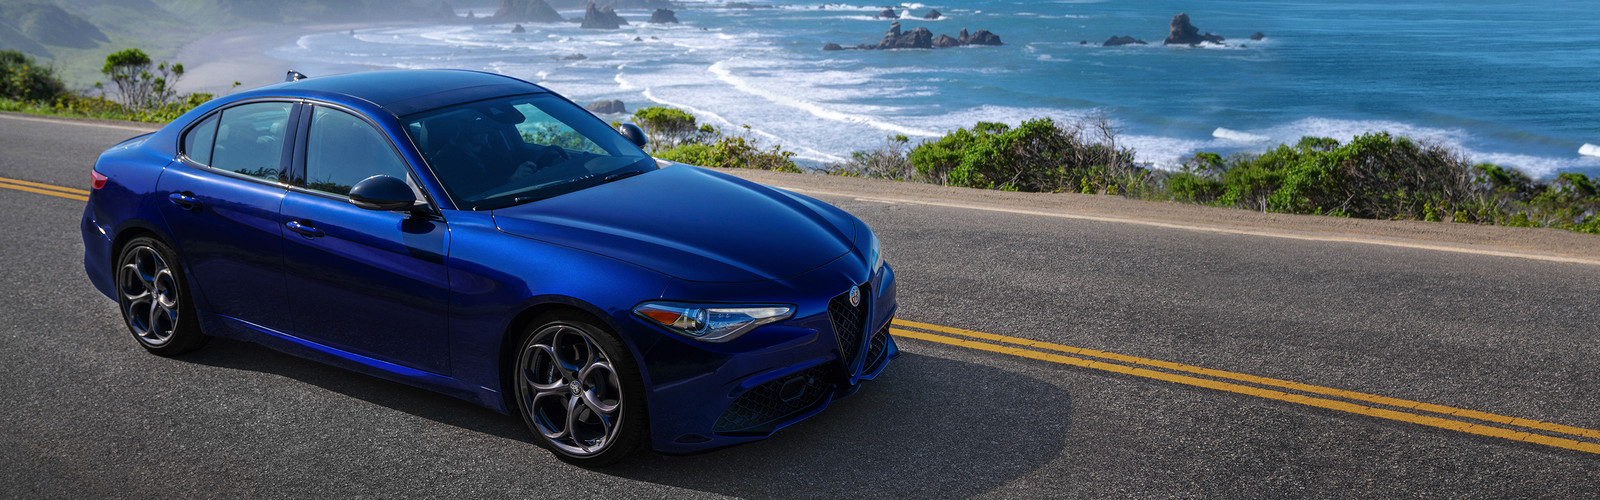 Blue 2019 Alfa Romeo Giulia being driven on a paved road along a coastline.